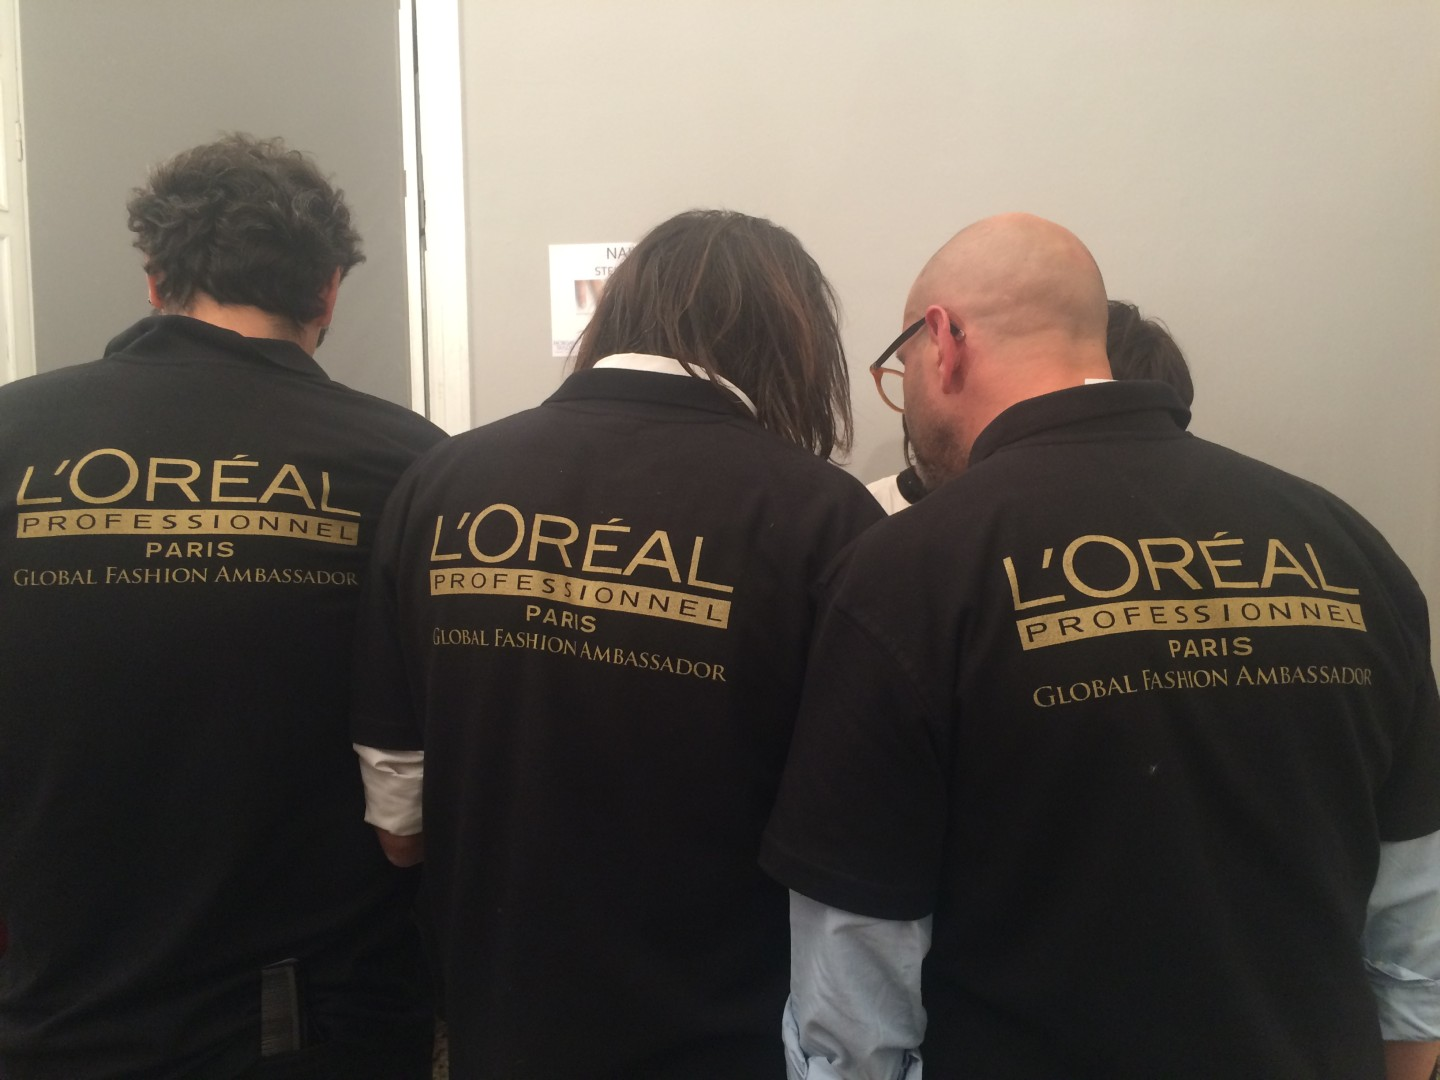 tendenza-2015-wet-loreal-professionne-davide-andena-valentina-coco-fashion-blogger